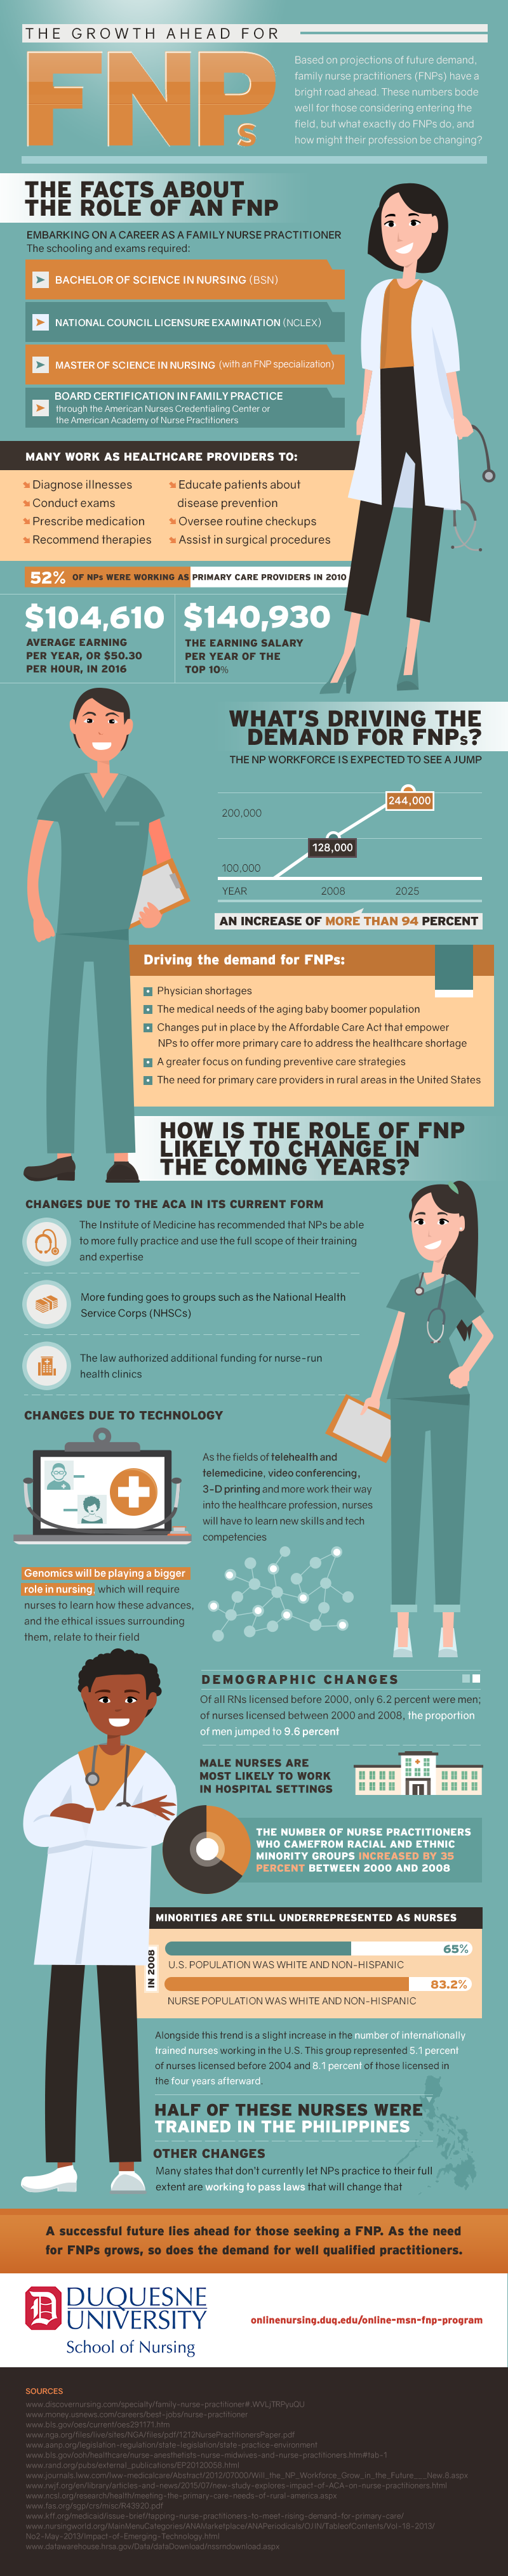 Infographic on The Growth Ahead for FNPs